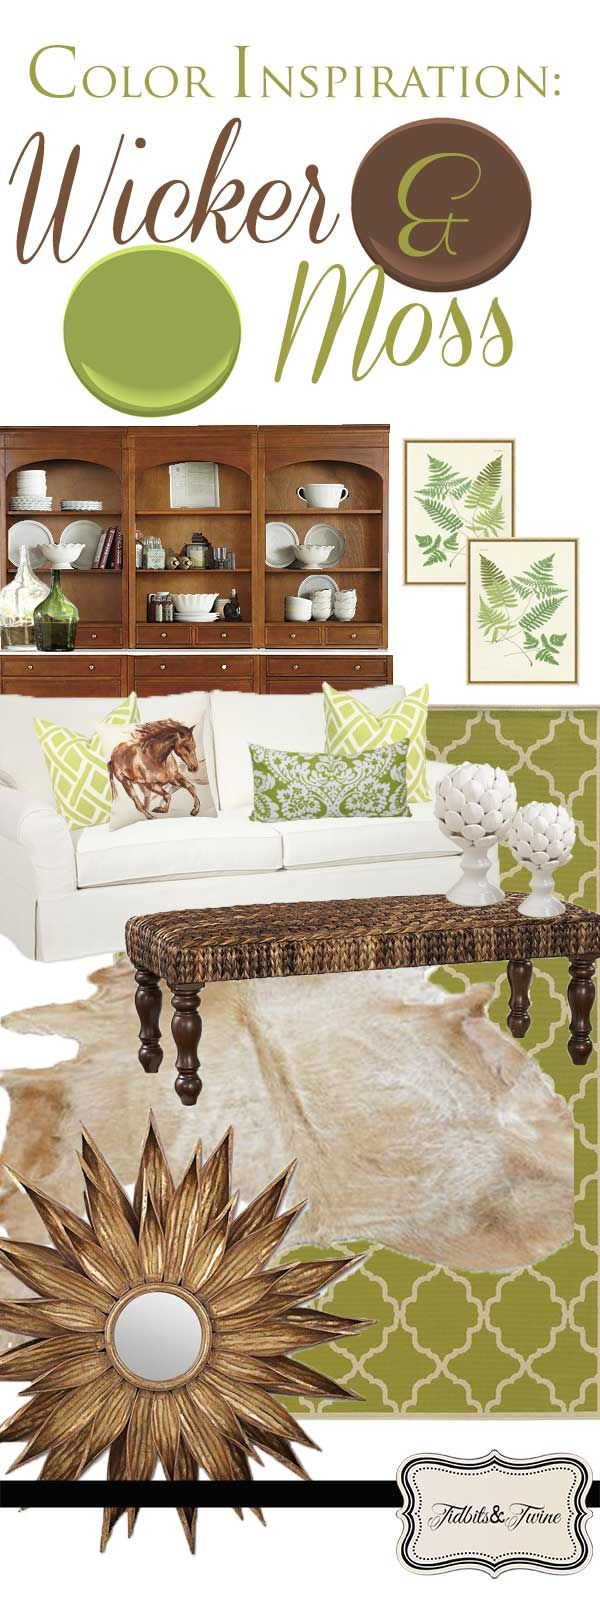 How to decorate using the beautiful colors